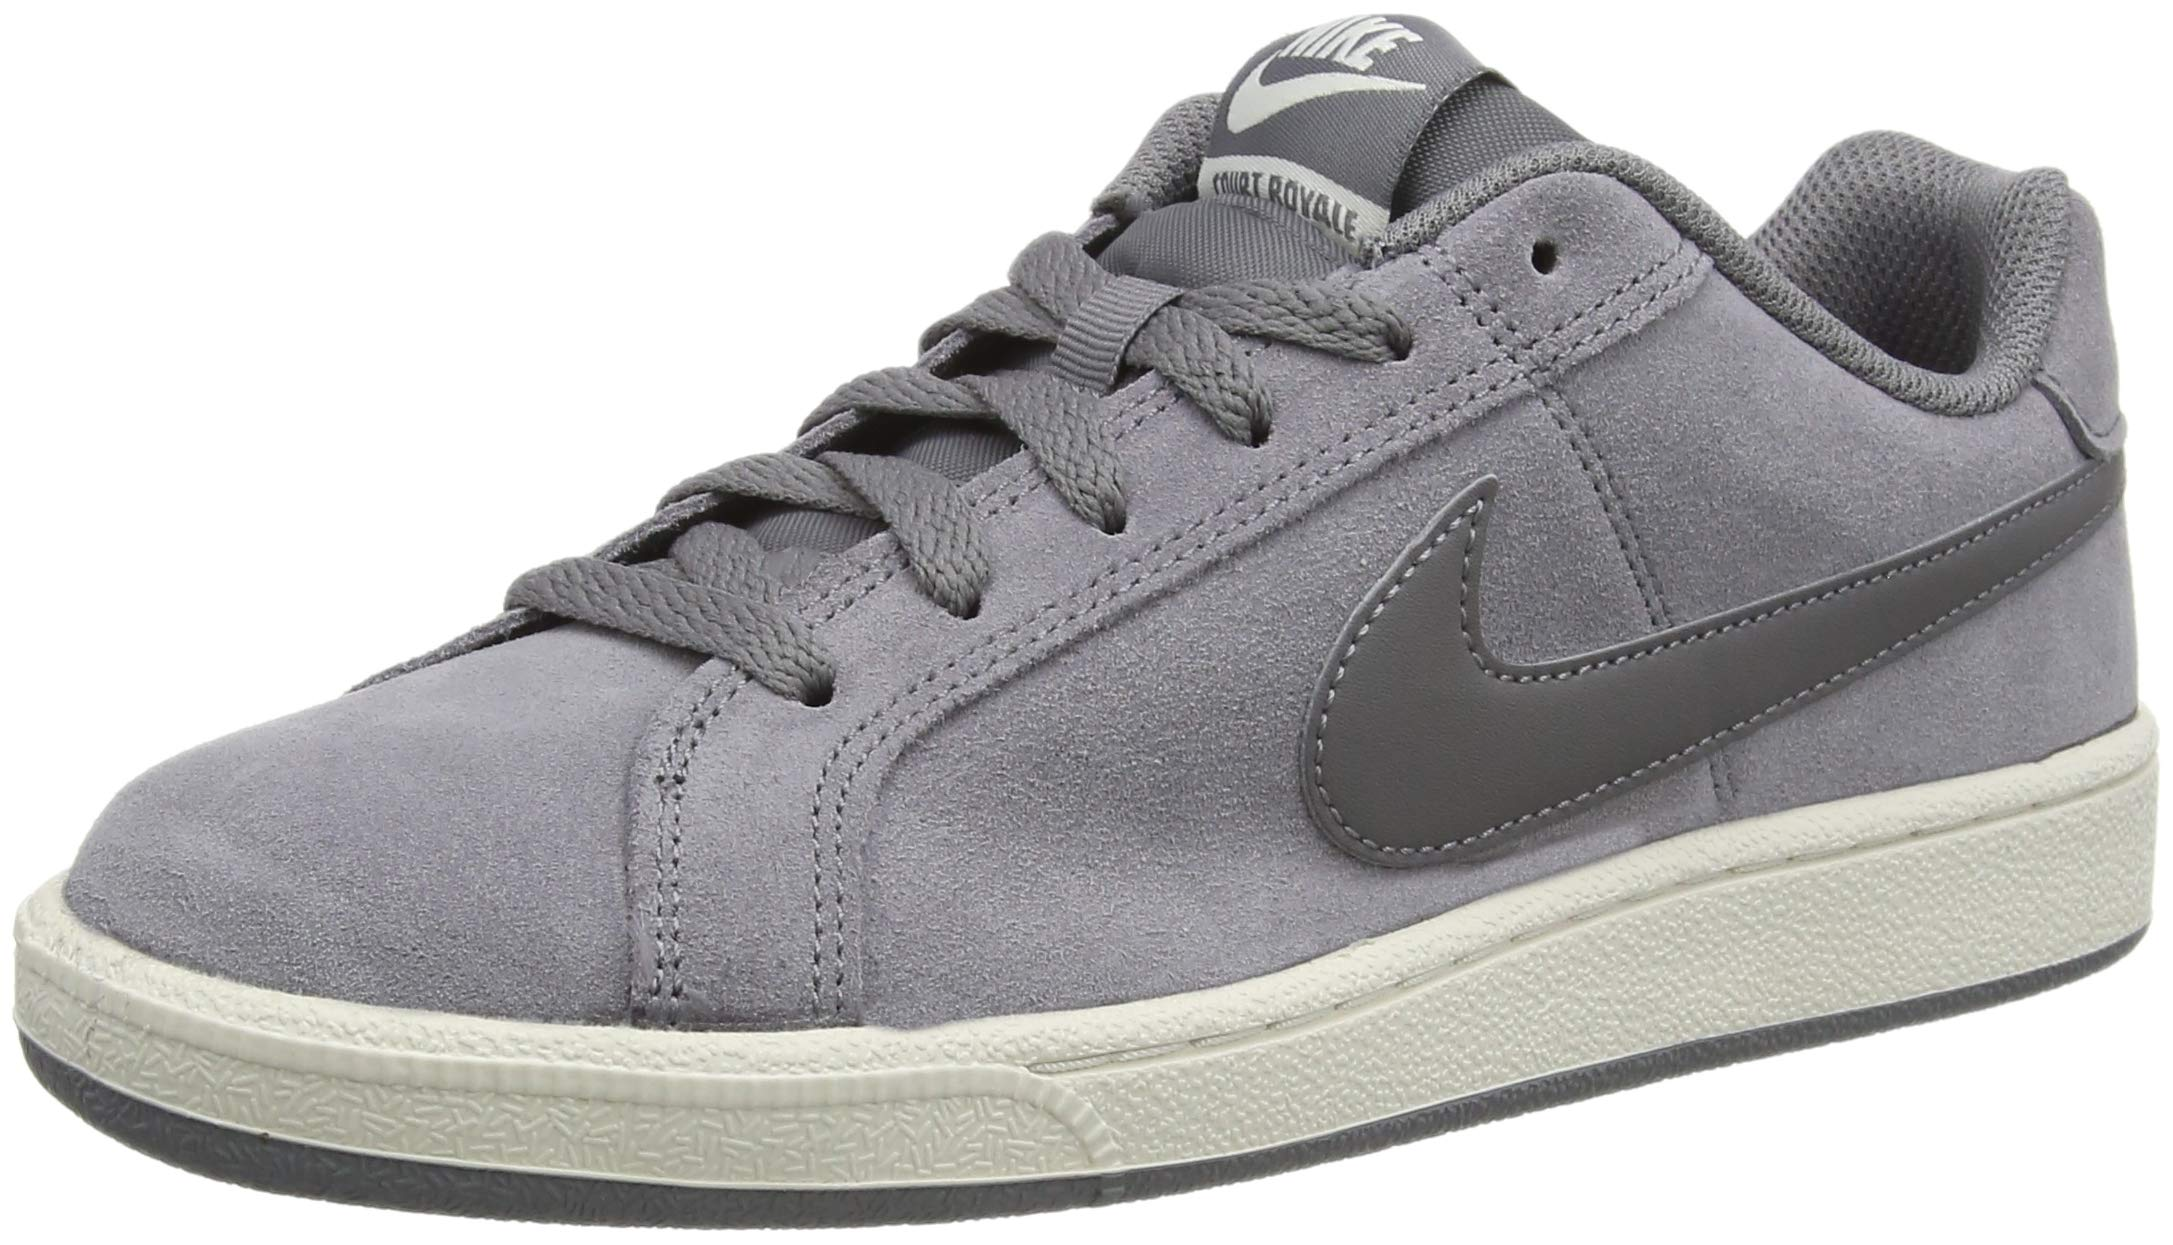 Women's Nike Court Royale Suede Shoe